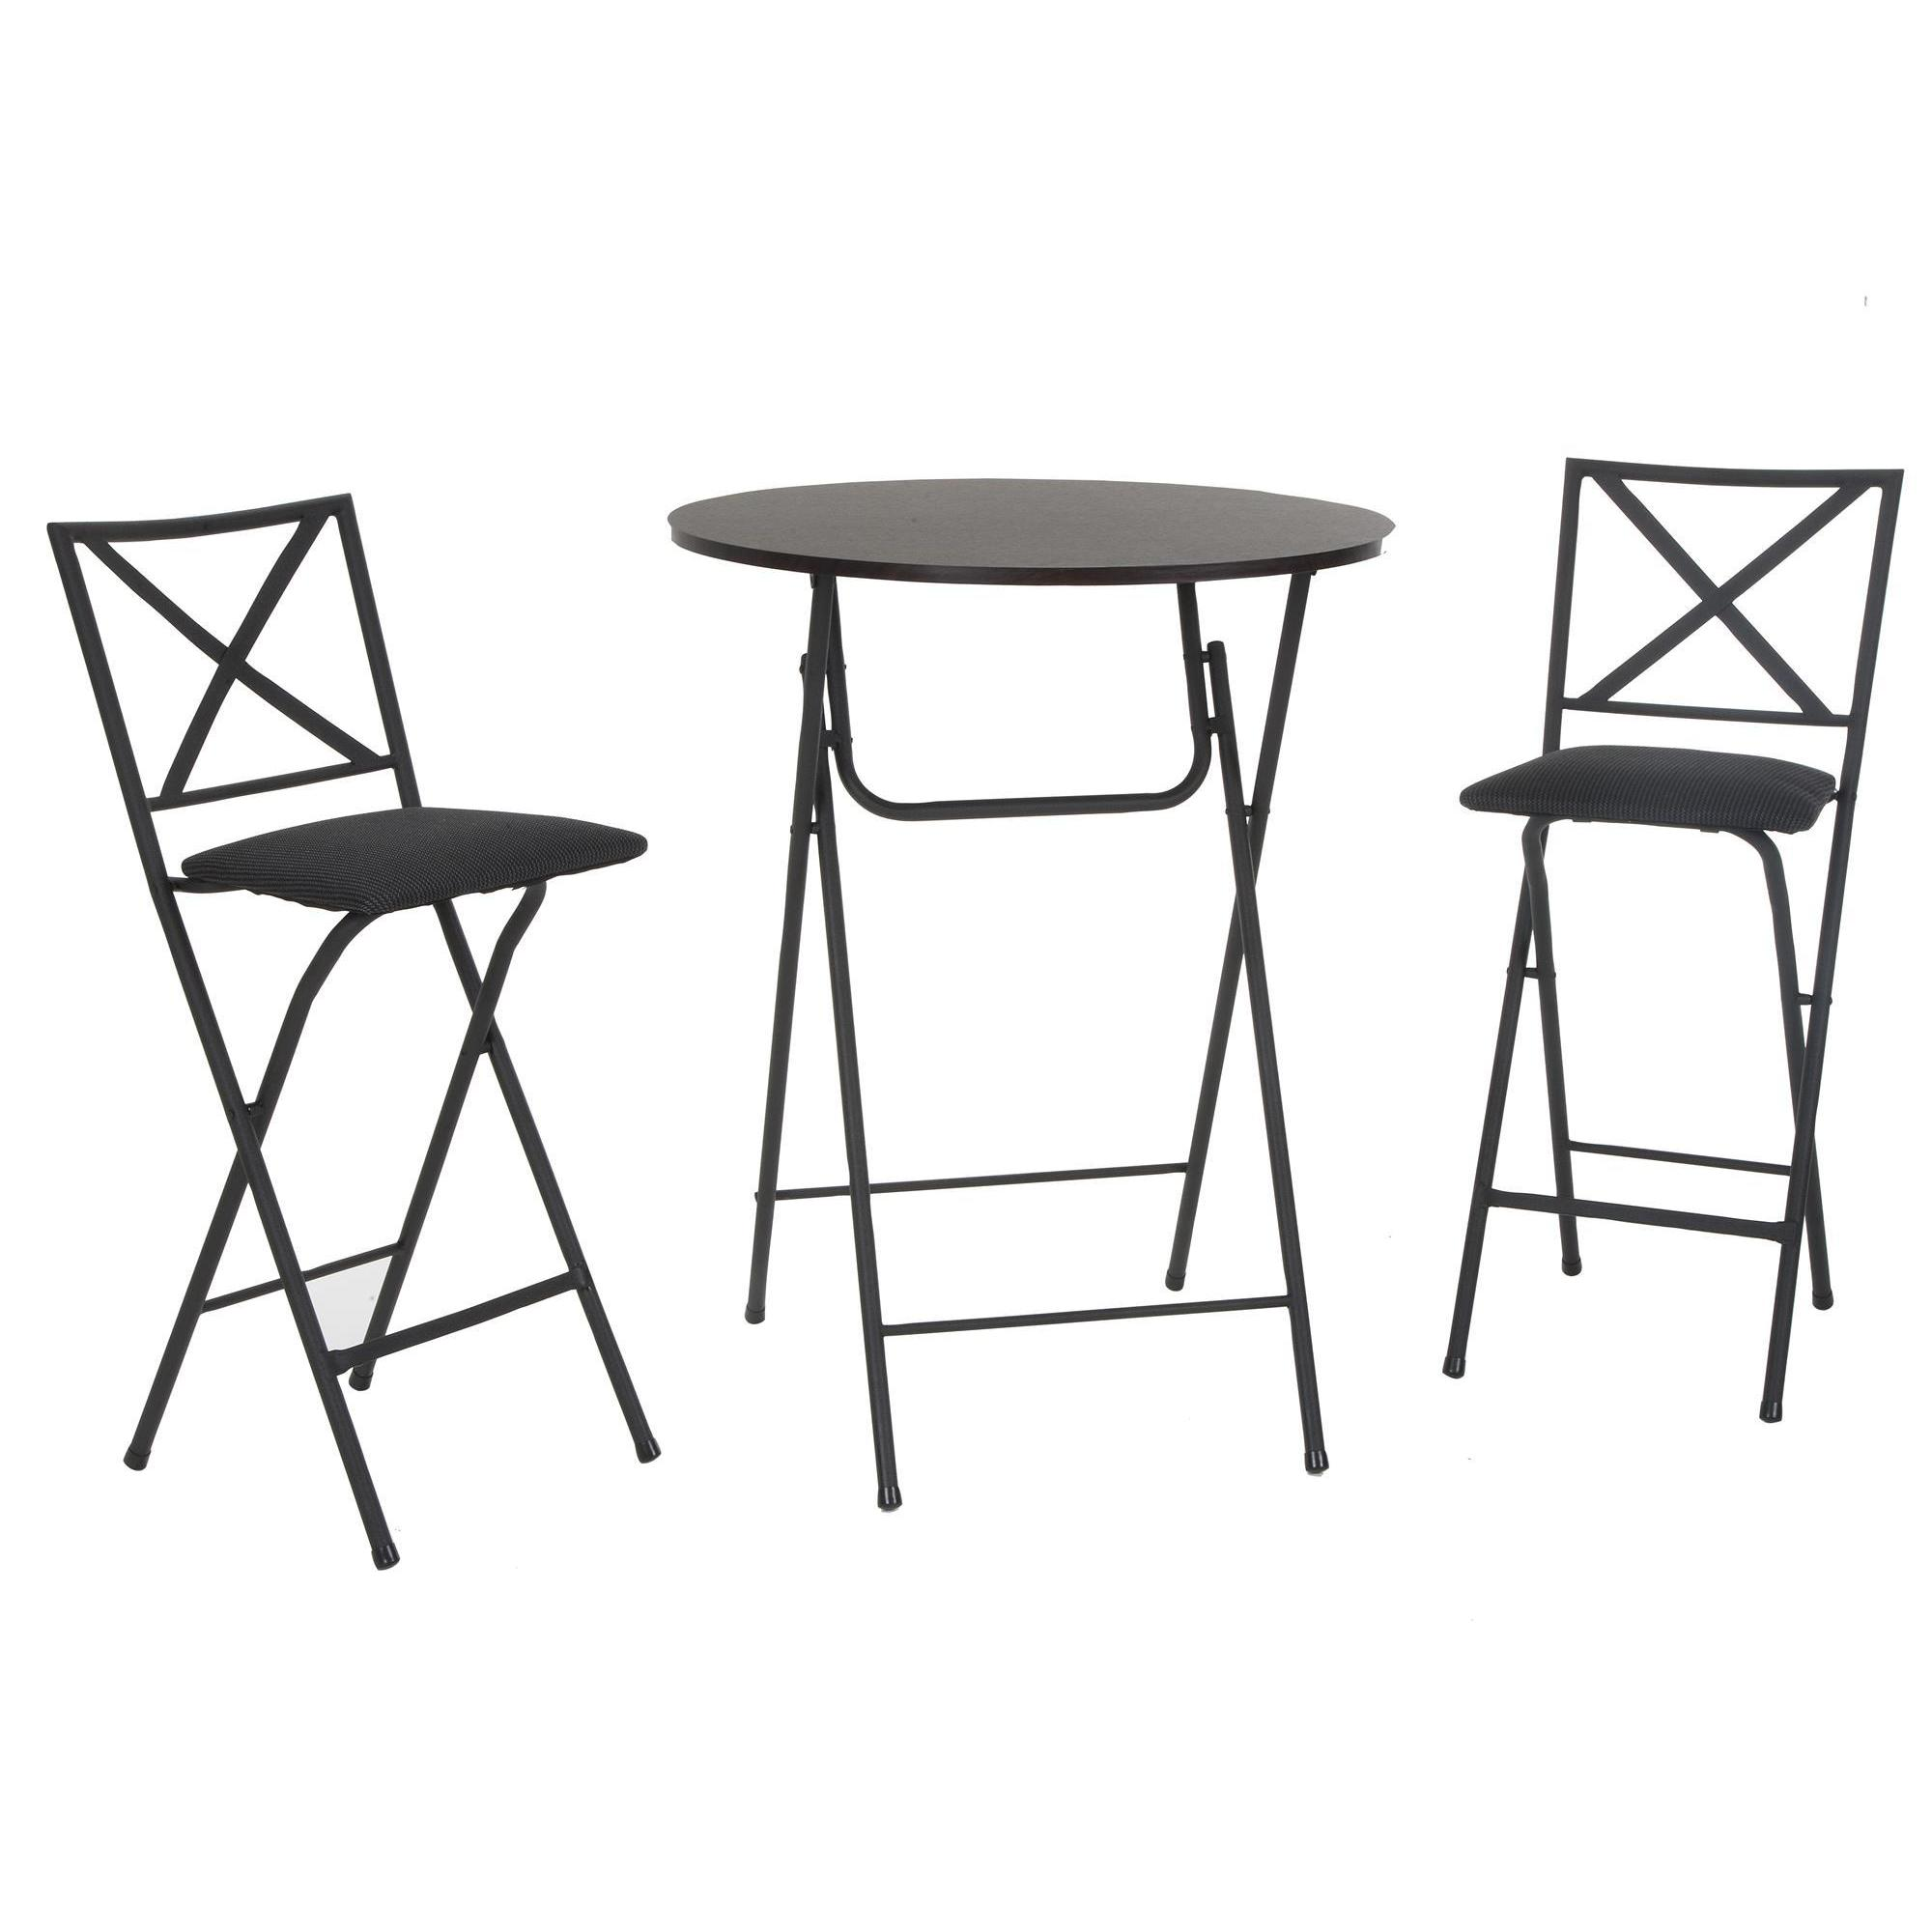 Tremendous Cosco 3 Piece Counter Height Bistro Set With Wood Grain Table And Padded Stools Gmtry Best Dining Table And Chair Ideas Images Gmtryco